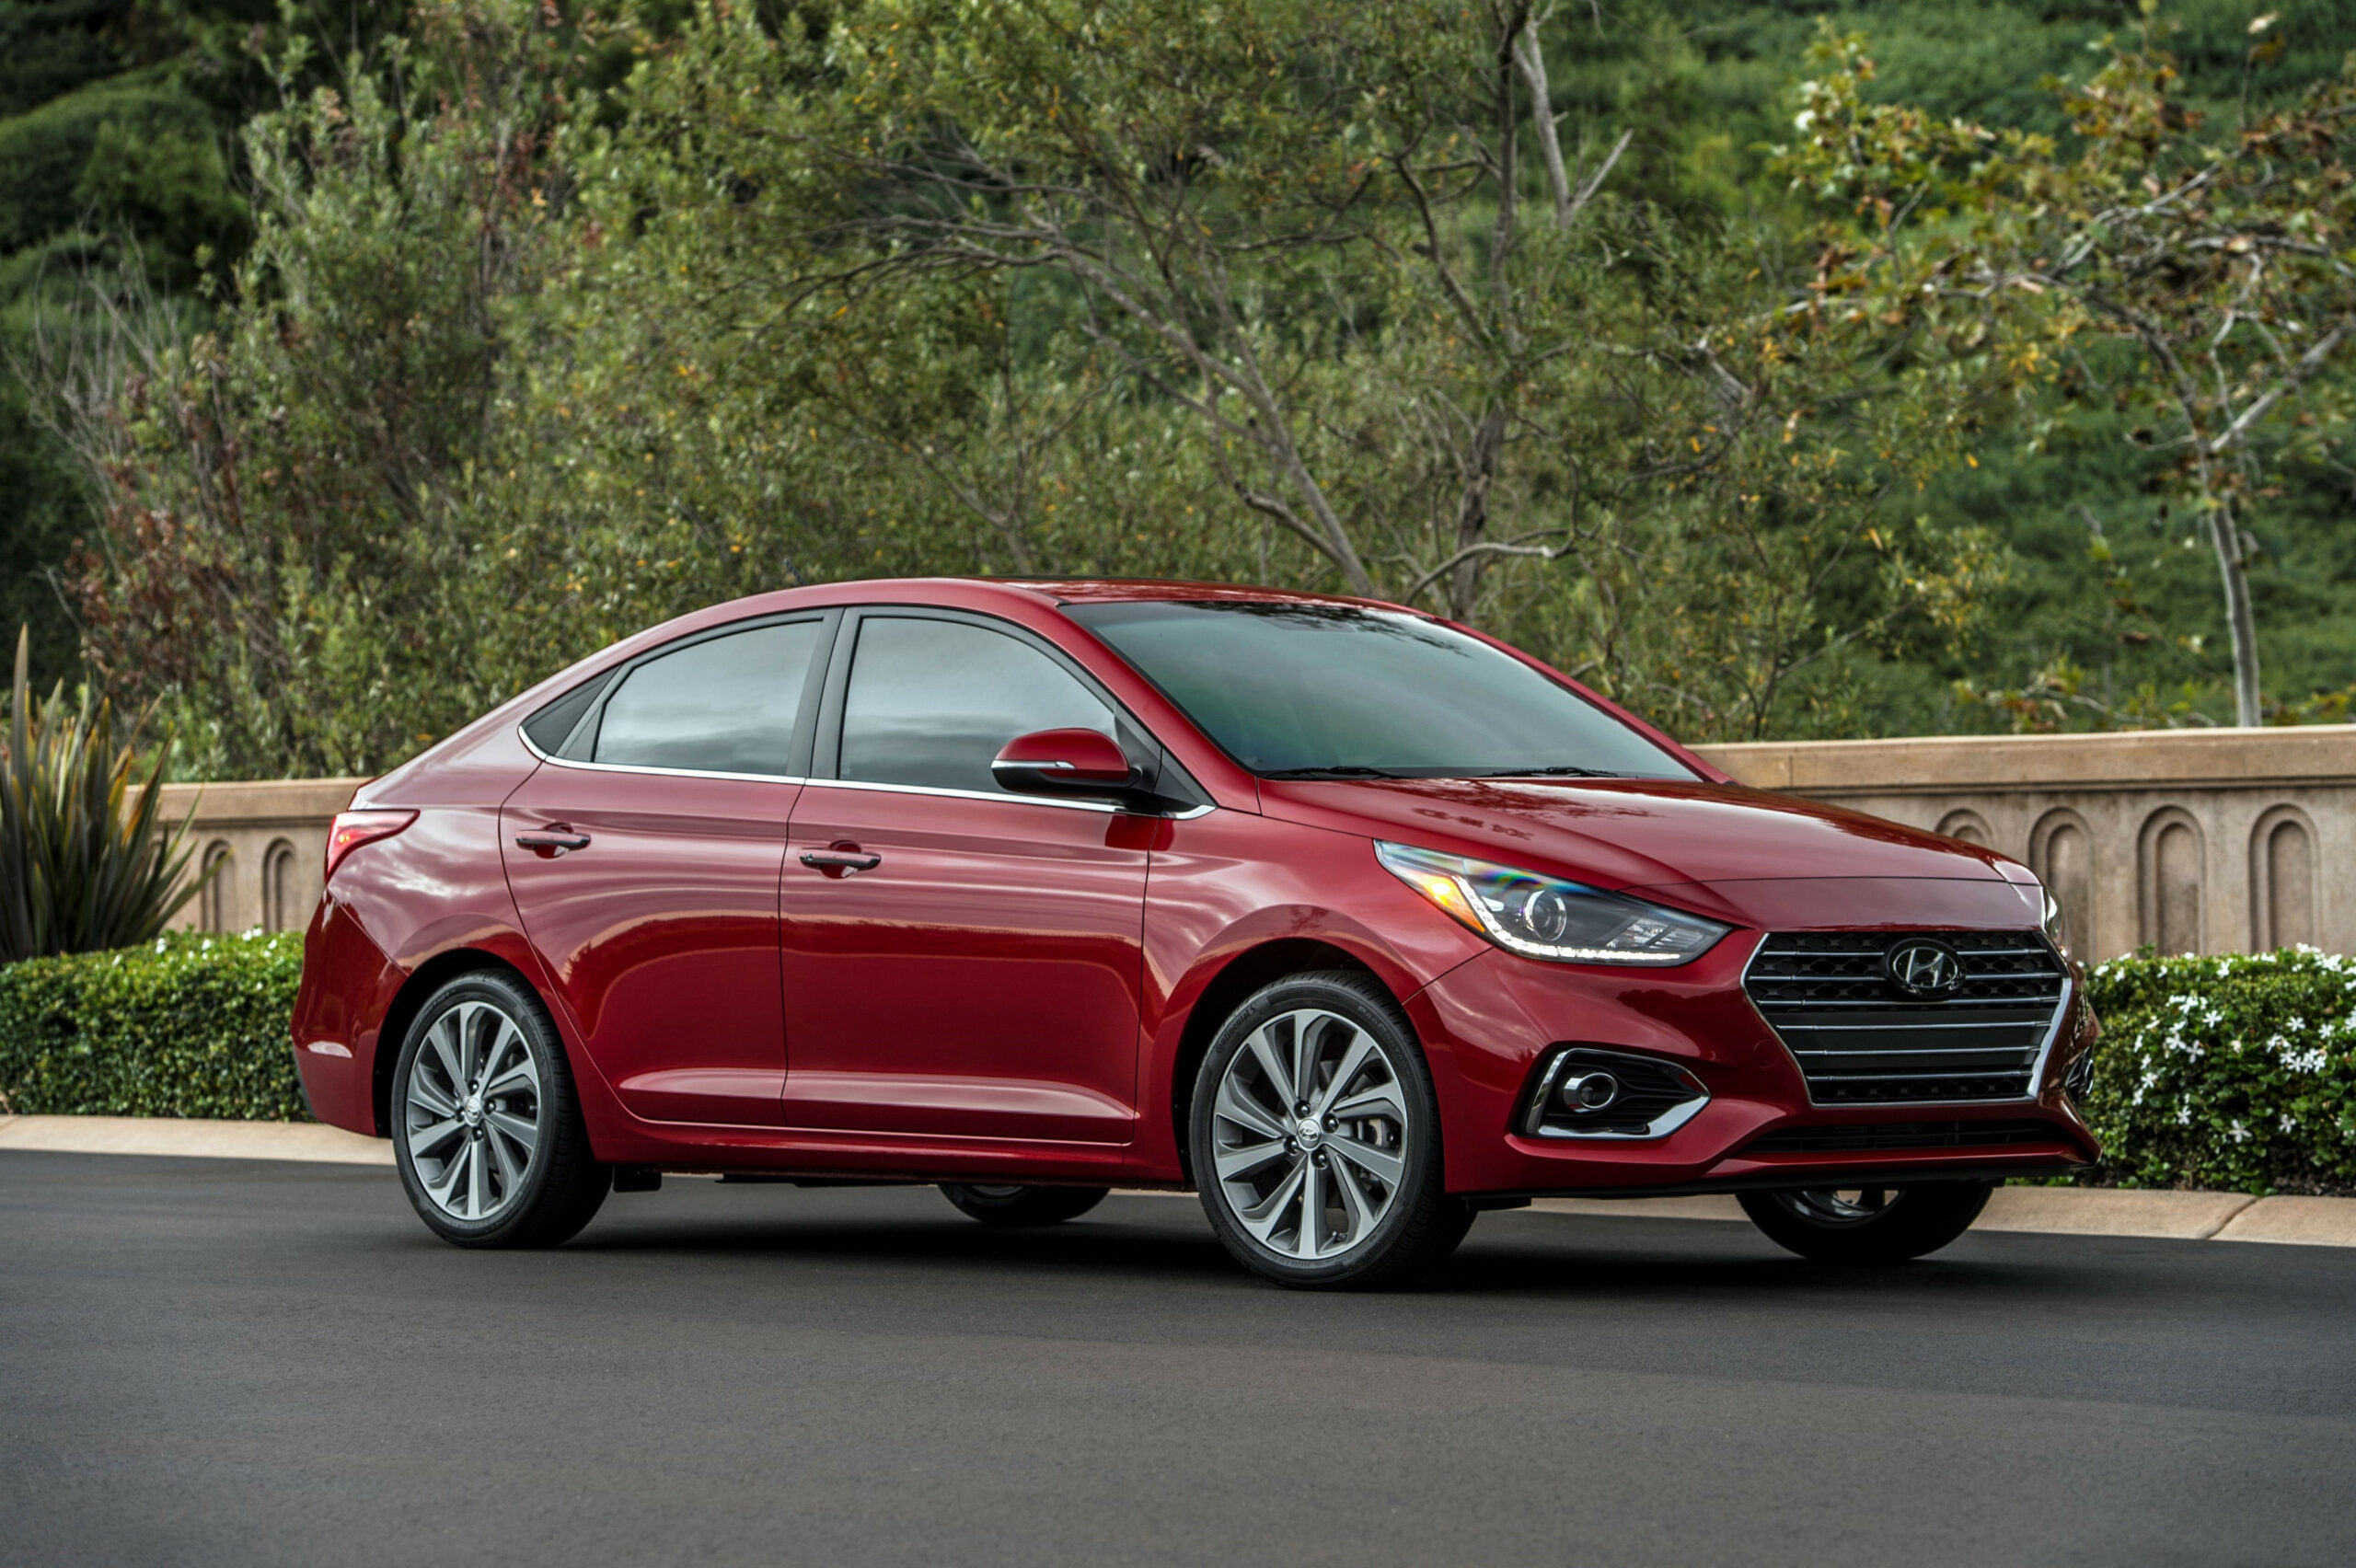 6 Hyundai Accent Review, Pricing, and Specs